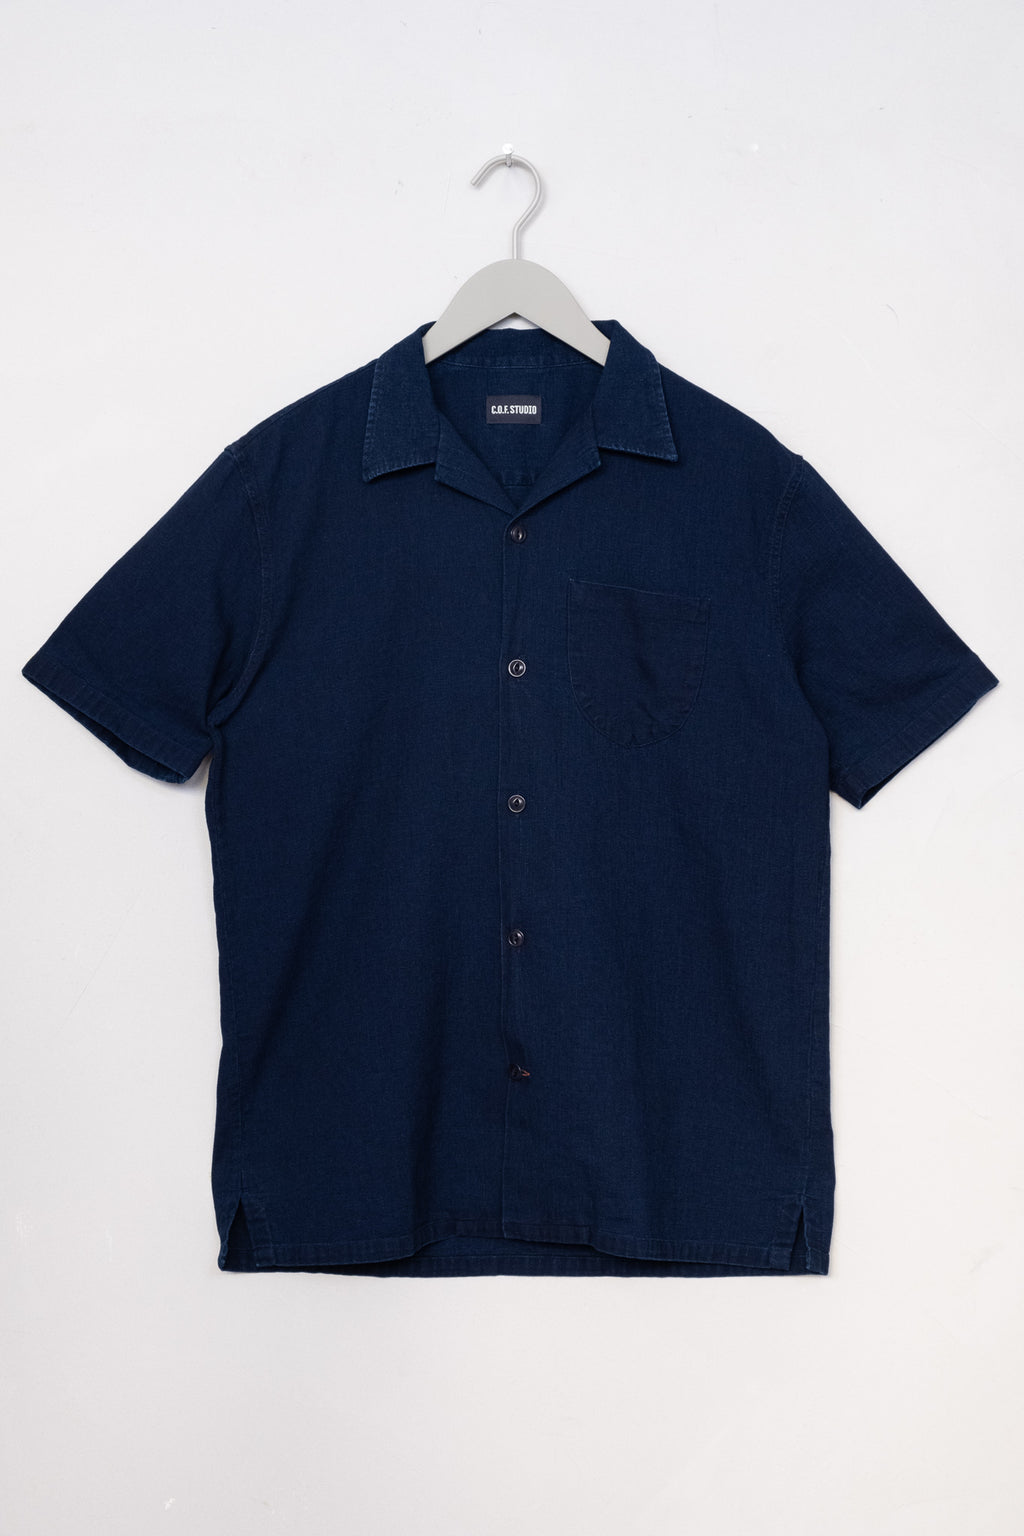 Camp Shirt Structured Indigo Cotton - Enzyme